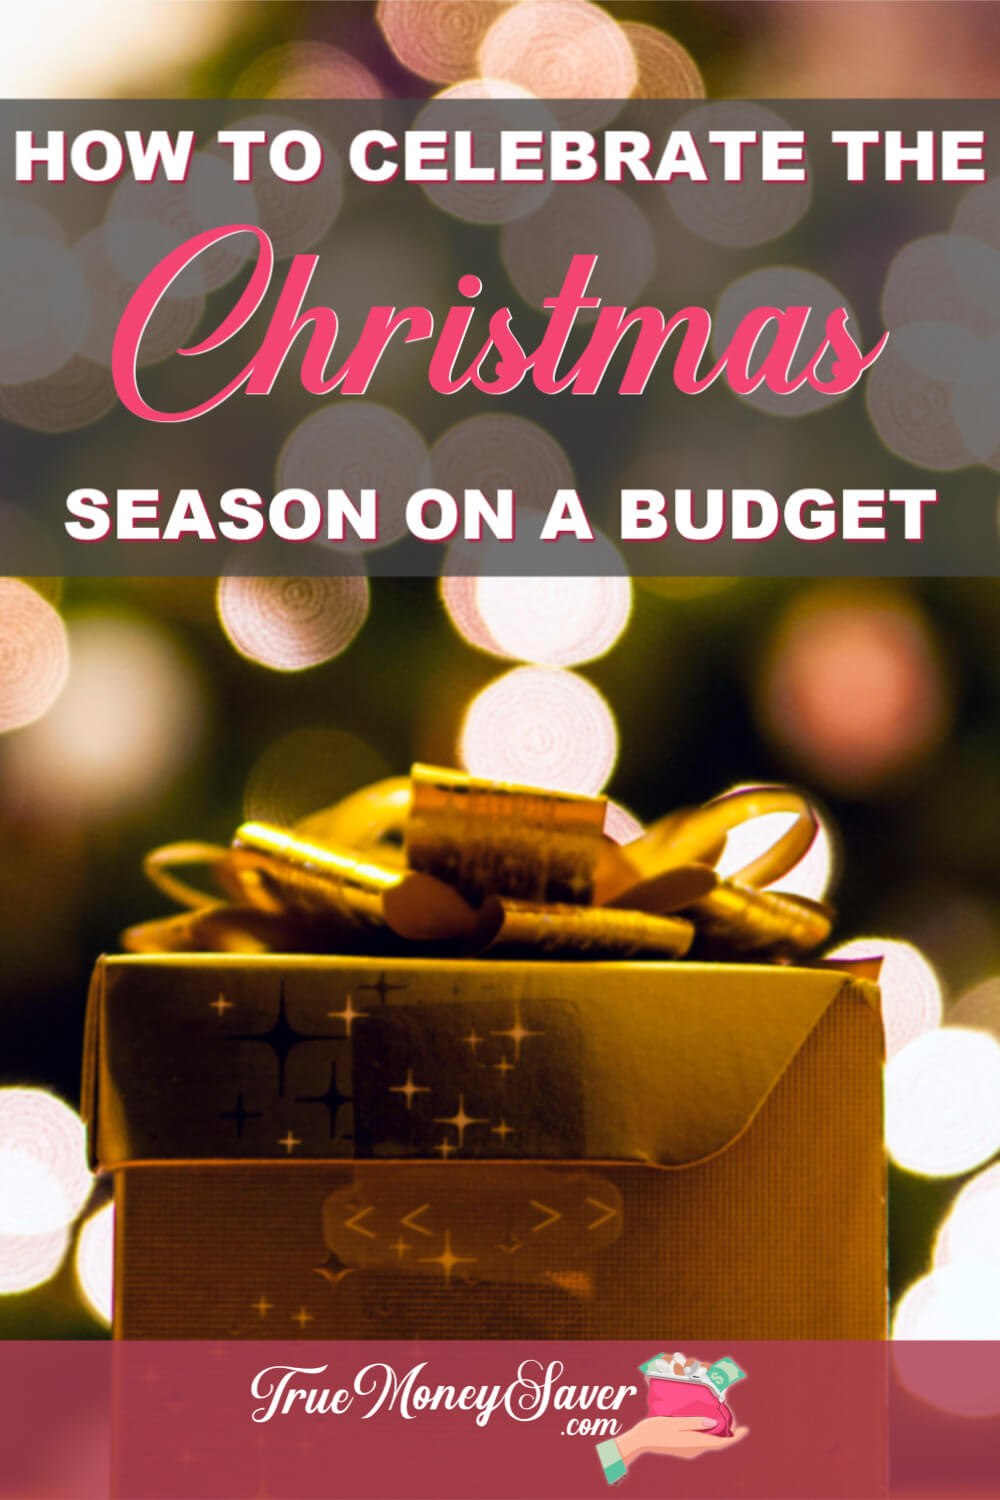 How To Celebrate The Christmas Season On A Budget